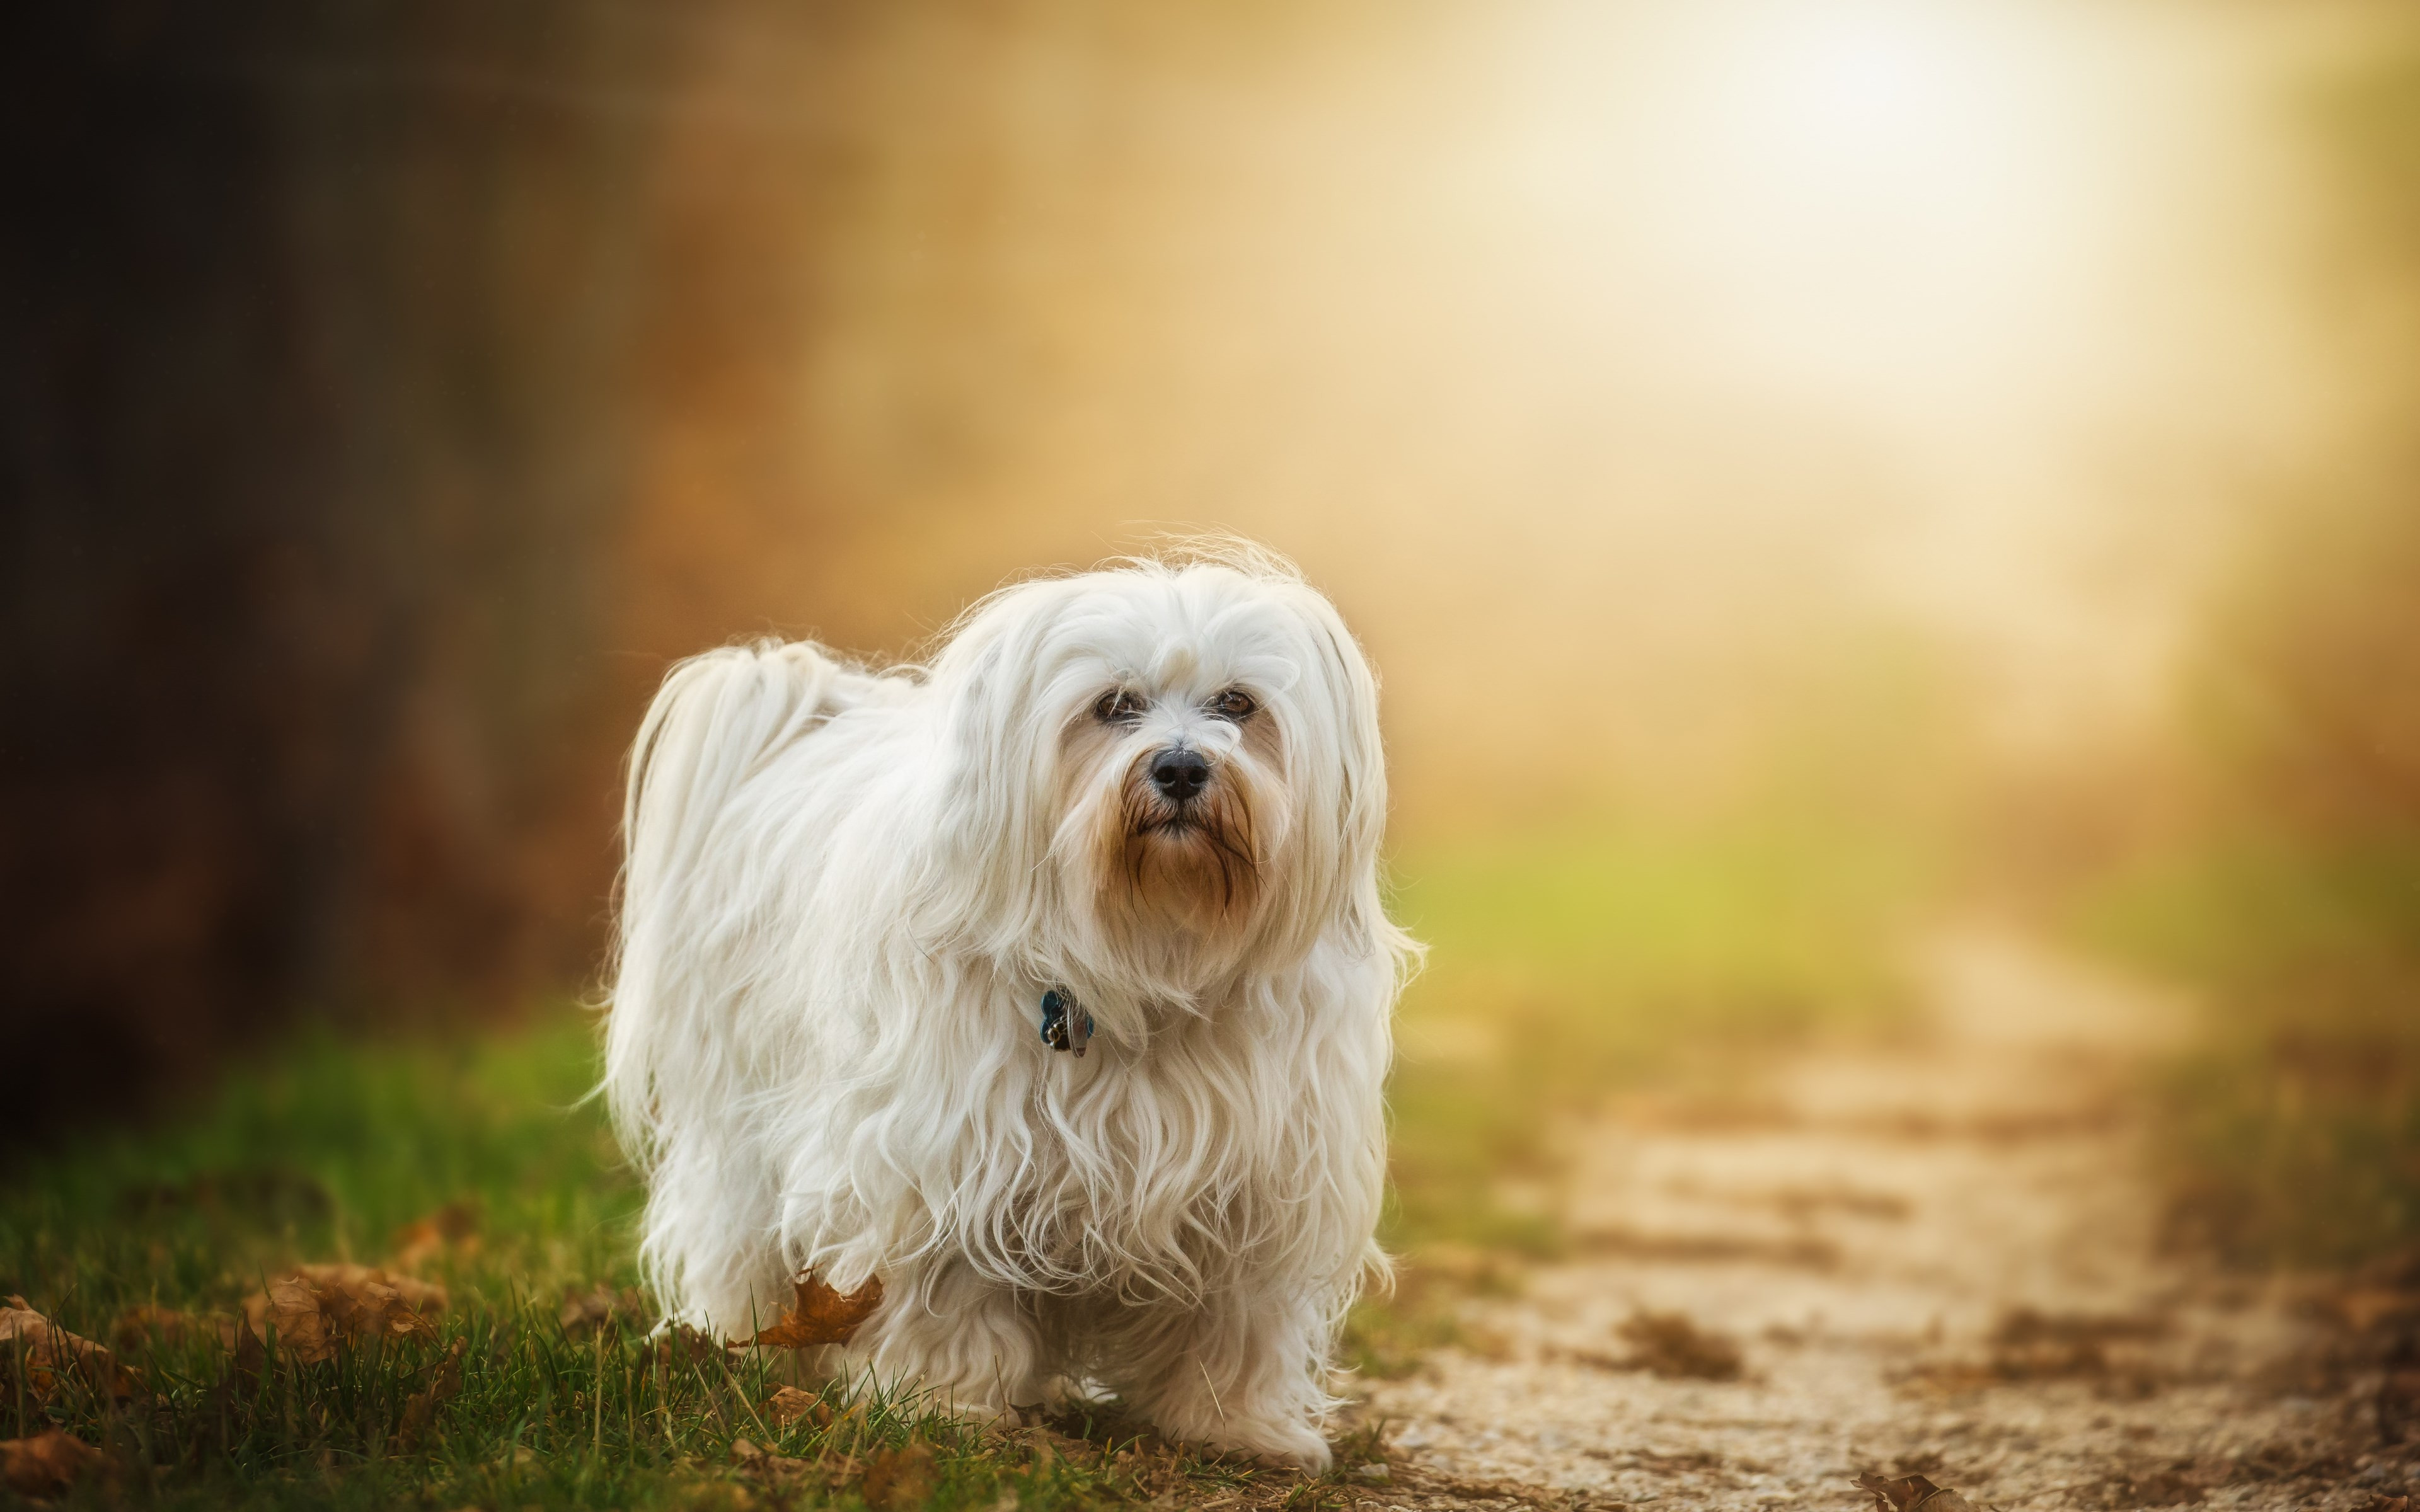 Havanese dog breed | 3840x2400 wallpaper